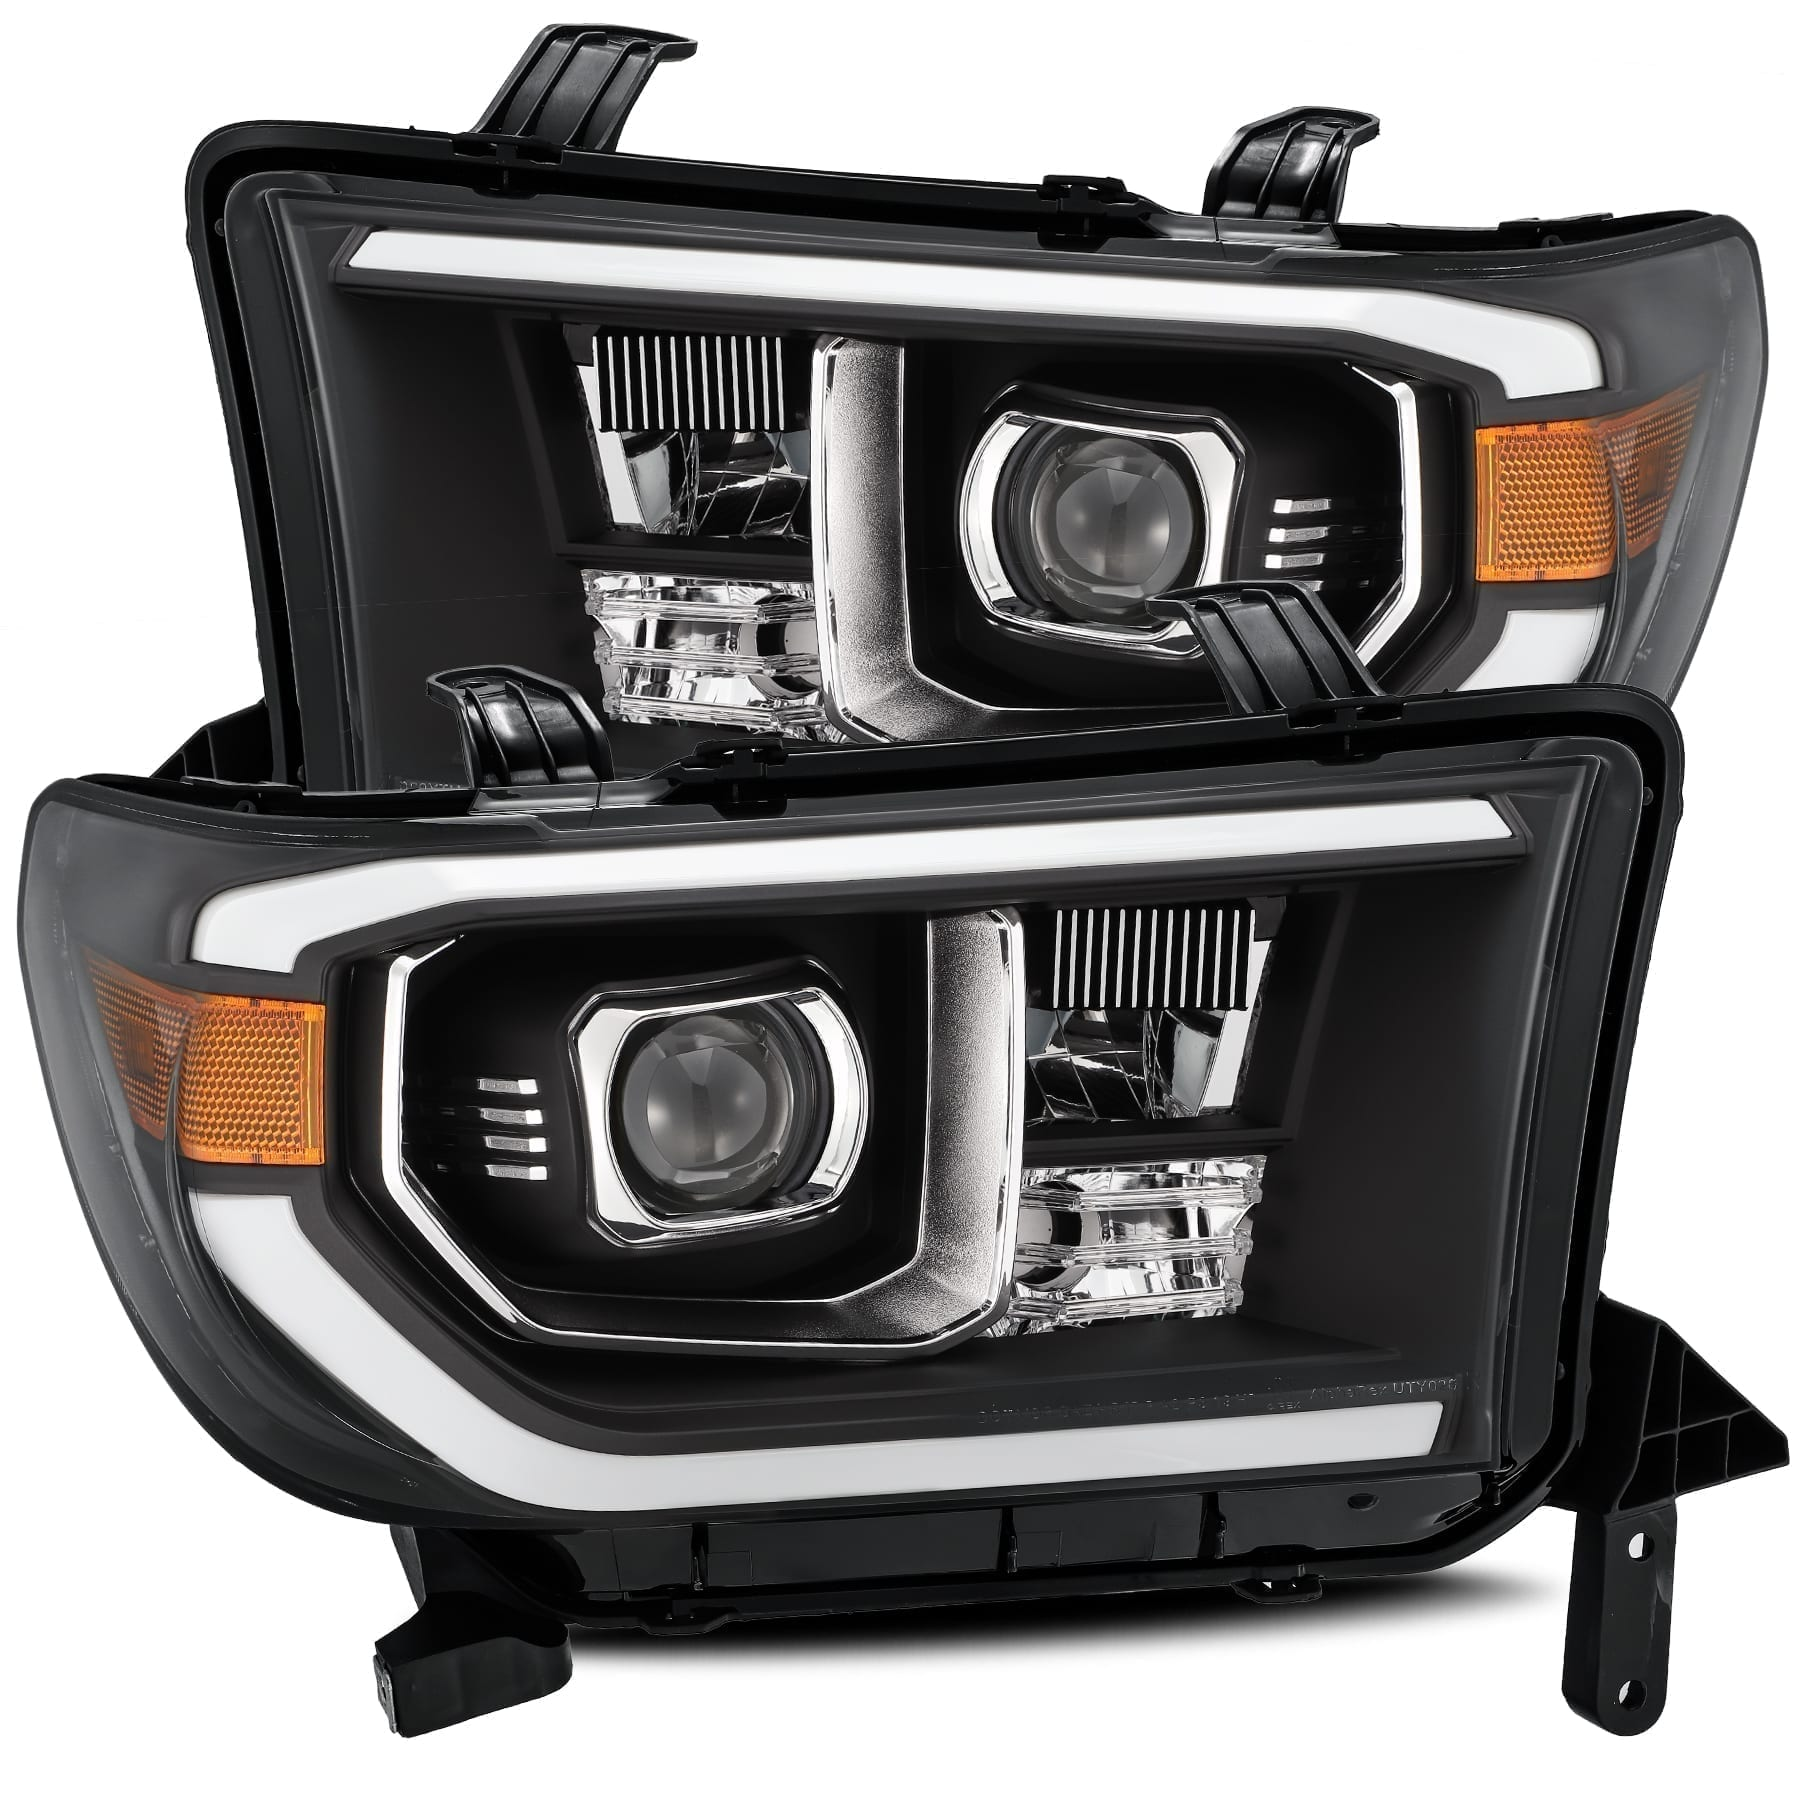 2007 2008 2009 2010 2011 2012 2013 Toyota Tundra Sequoia PRO-Series Projector Headlights Black